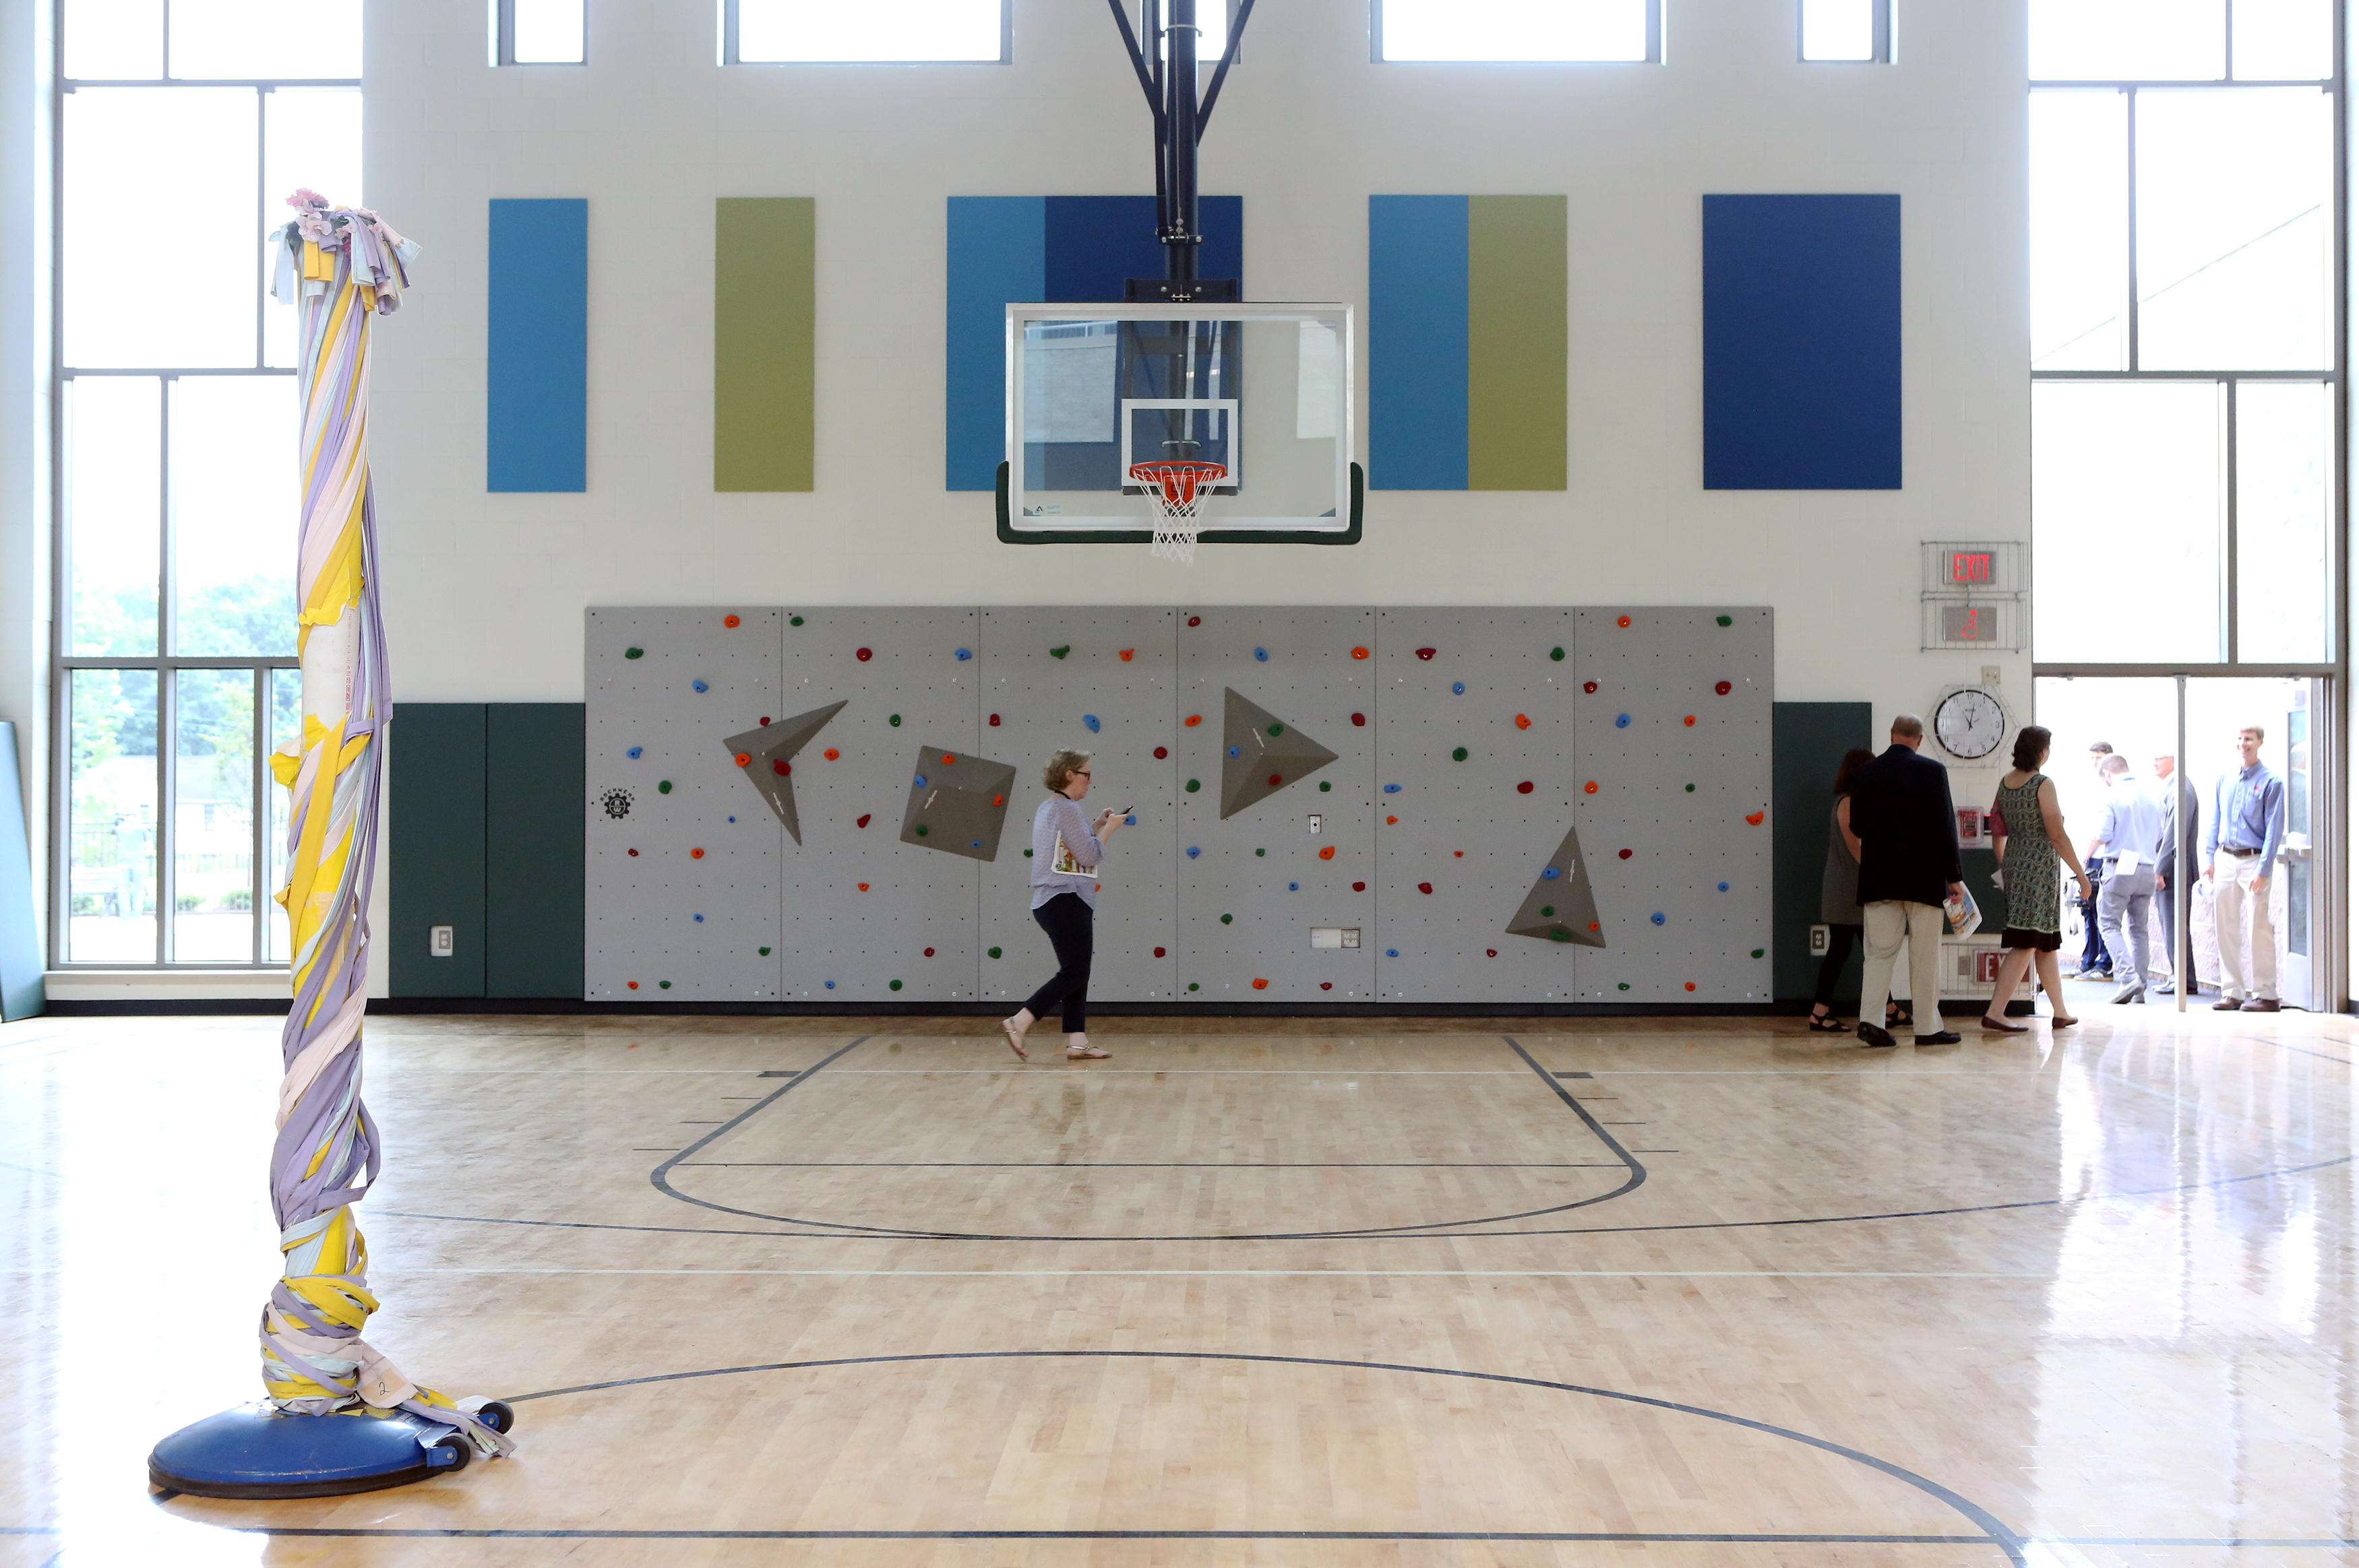 The gymnasium of the newly constructed Sandy Hook Elementary School is unveiled by officials in Newtown, Connecticut, on July 29, 2016. Photo by Michelle McLoughlin/Reuters